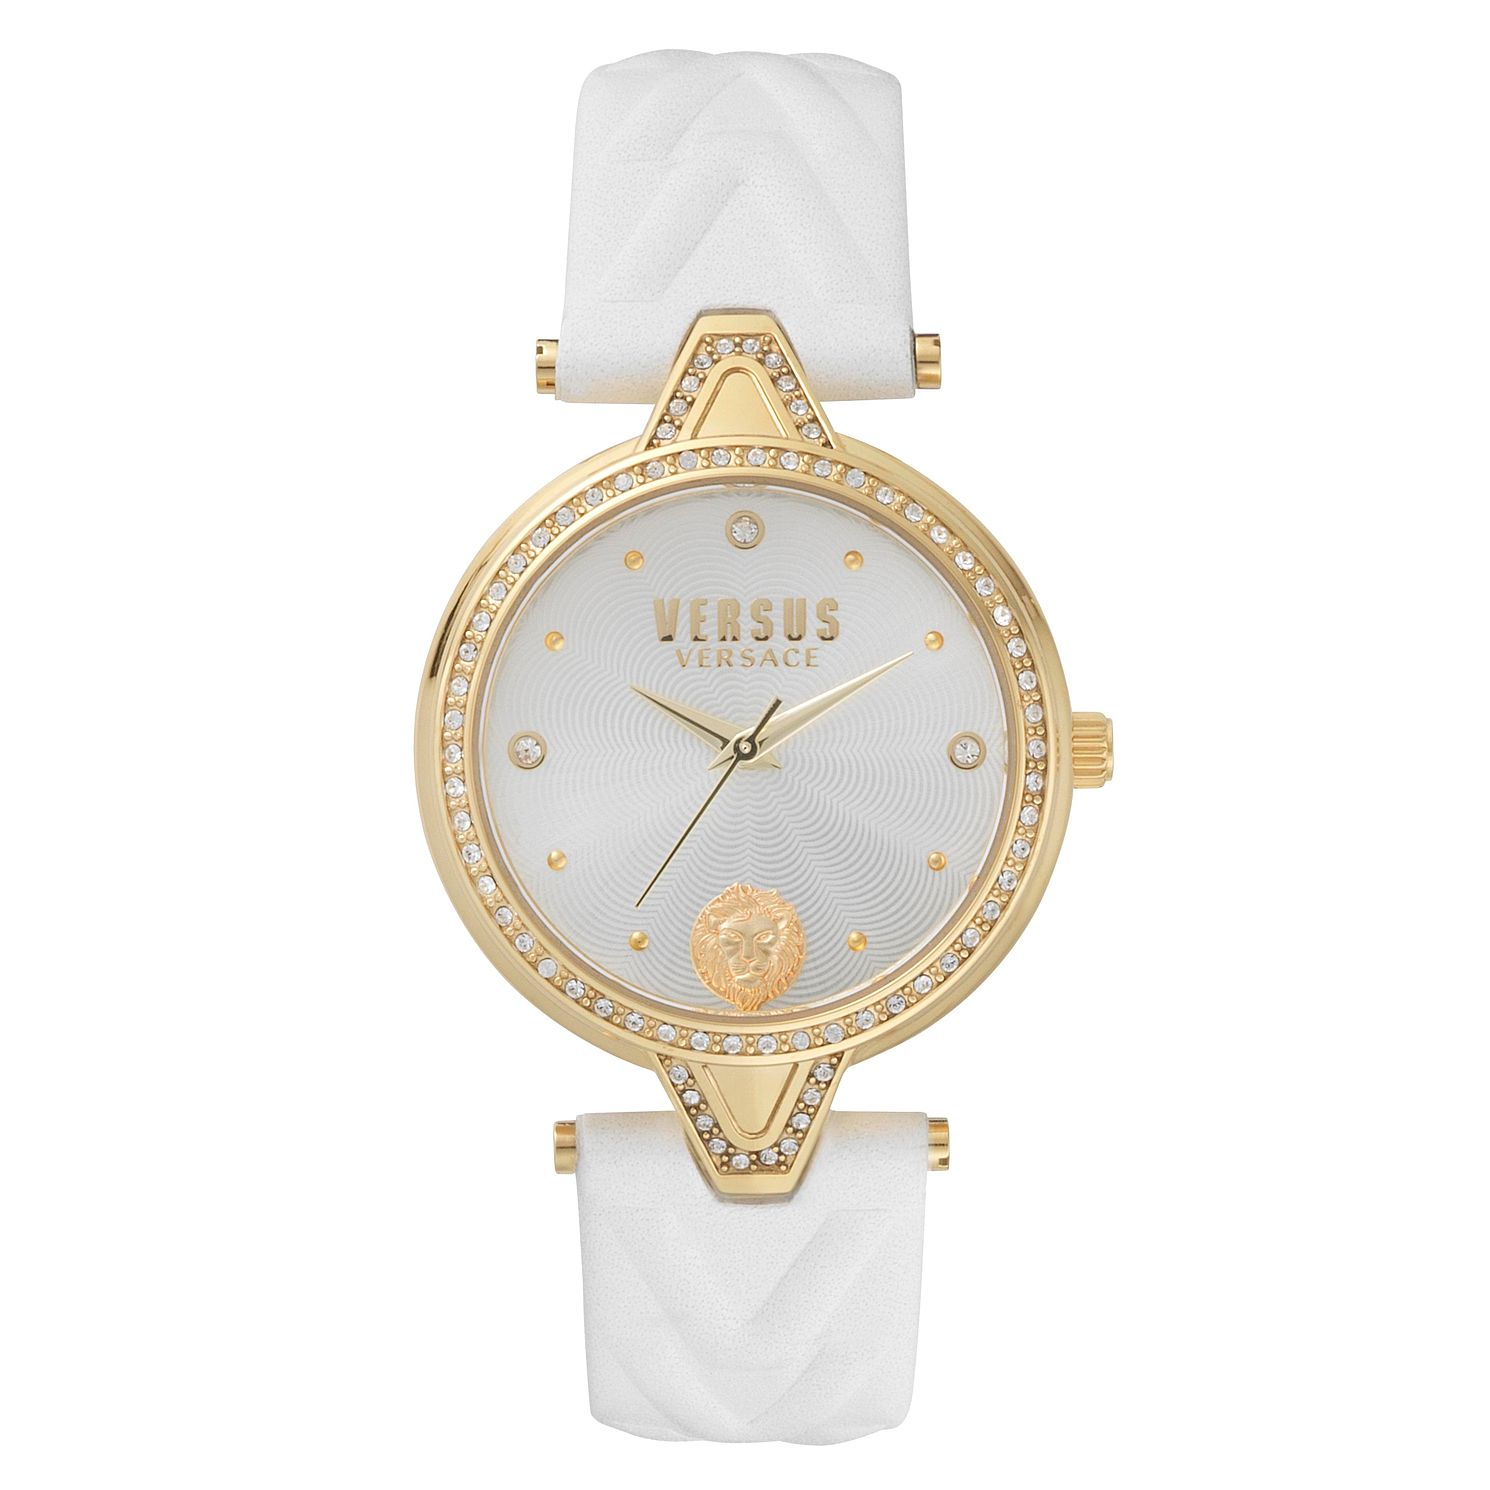 Versus Versace Ladies' White Leather Strap Watch - Product number 8391440